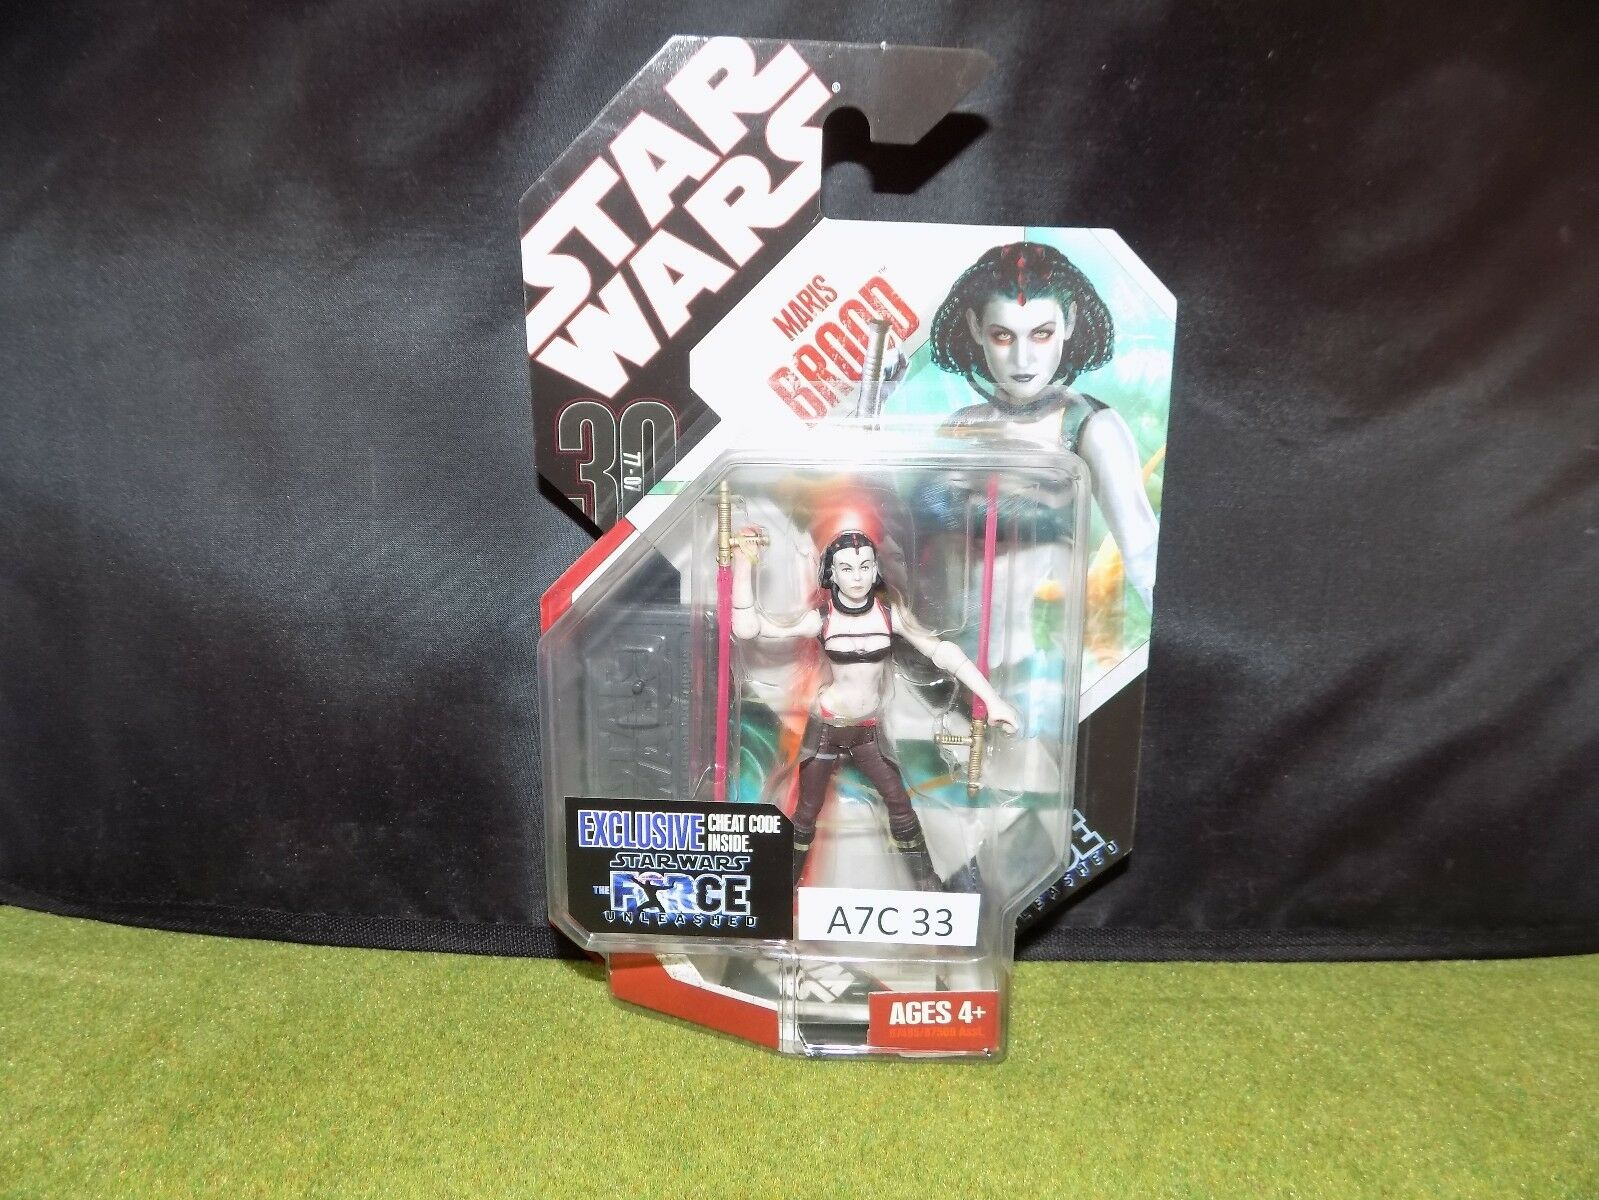 STAR WARS 30th Anniversary MARIS BROOD NIB 3.75in  (A7C 33)